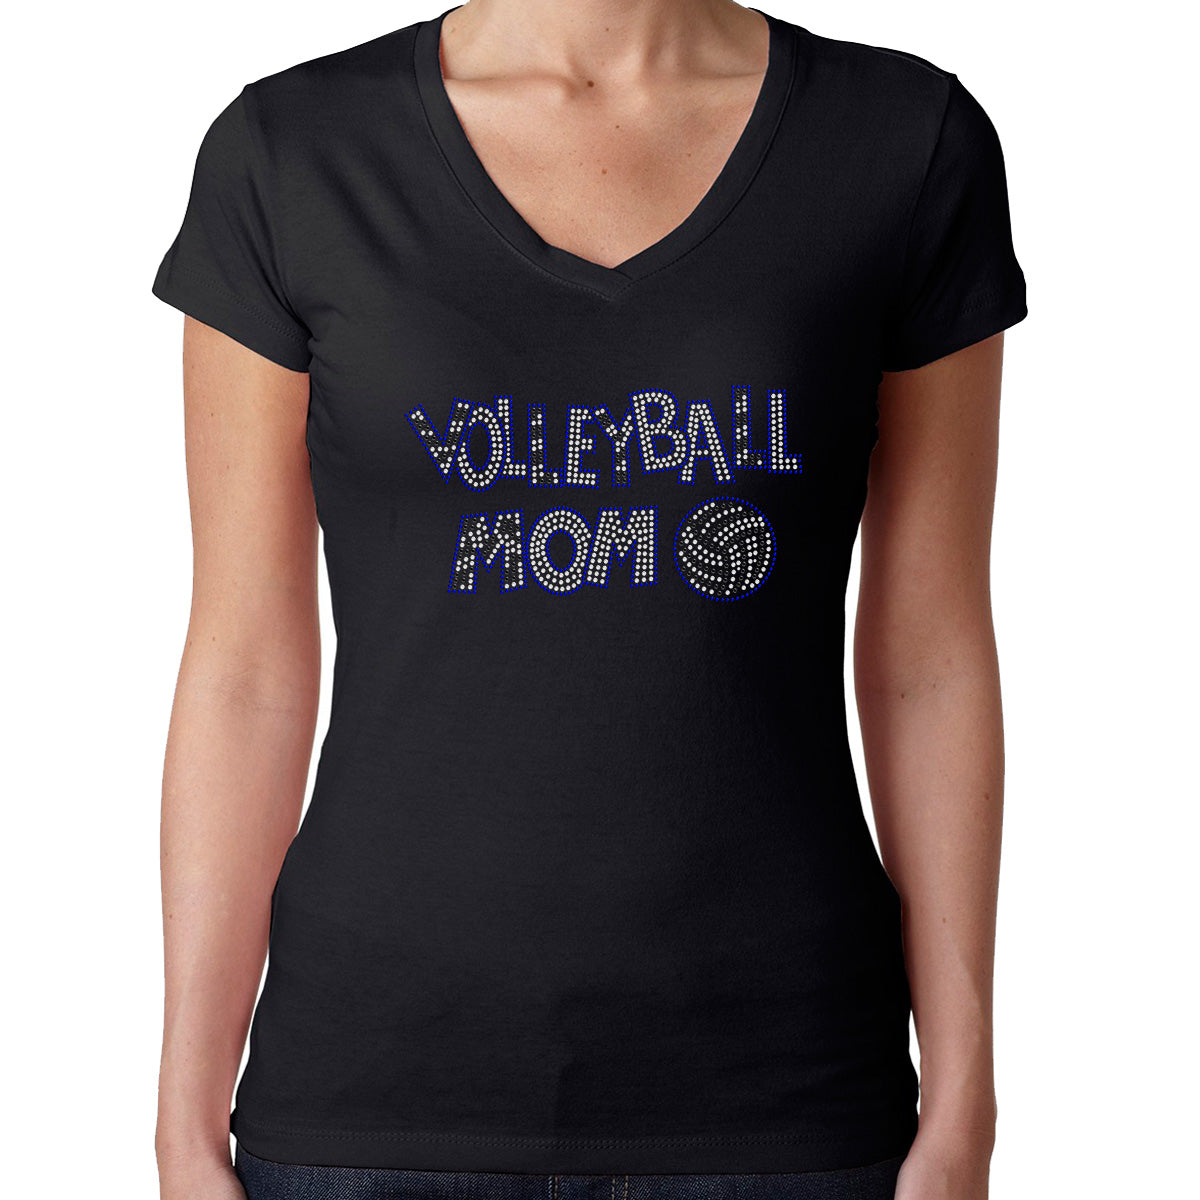 Womens T-Shirt Rhinestone Bling Black Fitted Tee Volleyball Mom Sports